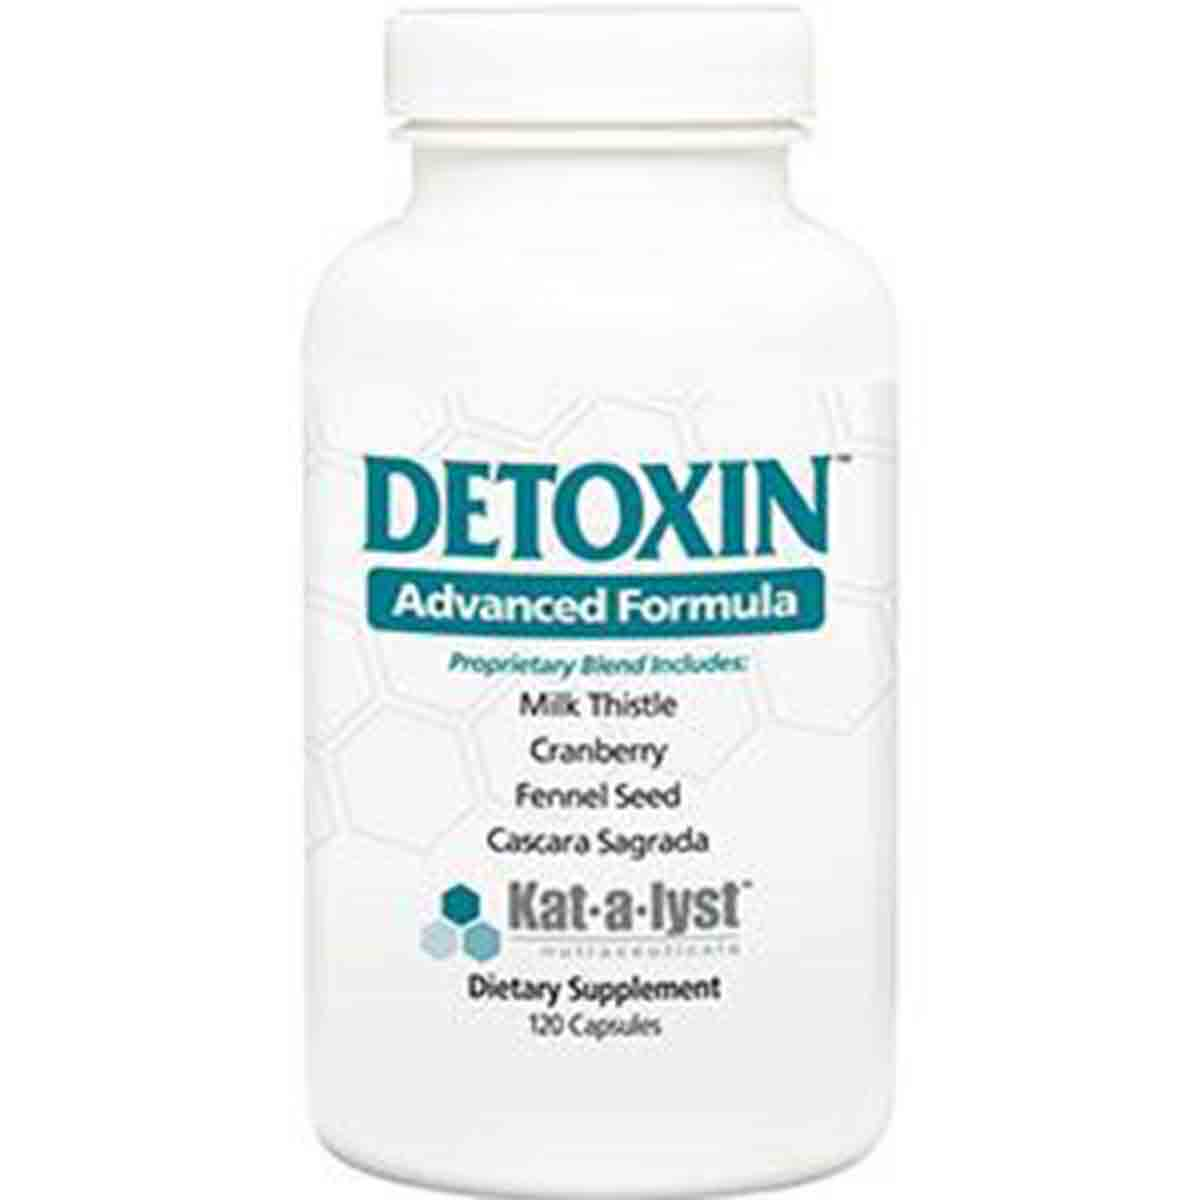 Detoxin Advanced Formula